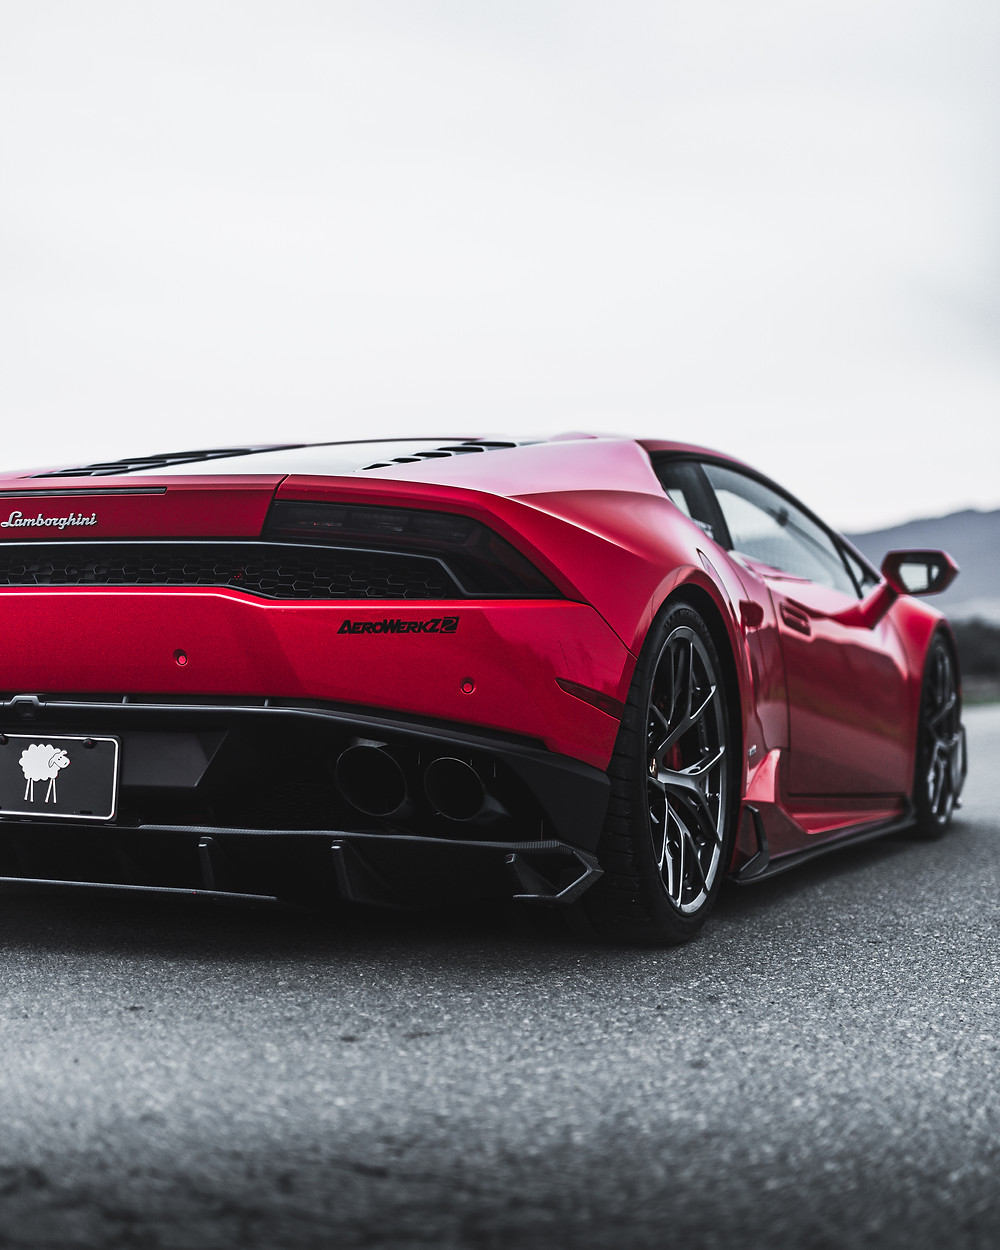 rosso red lamborghini huracan with bbs F1R 20 inch wheels in diamond silver and lowered with novitec springs and future design carbon fiber body kit